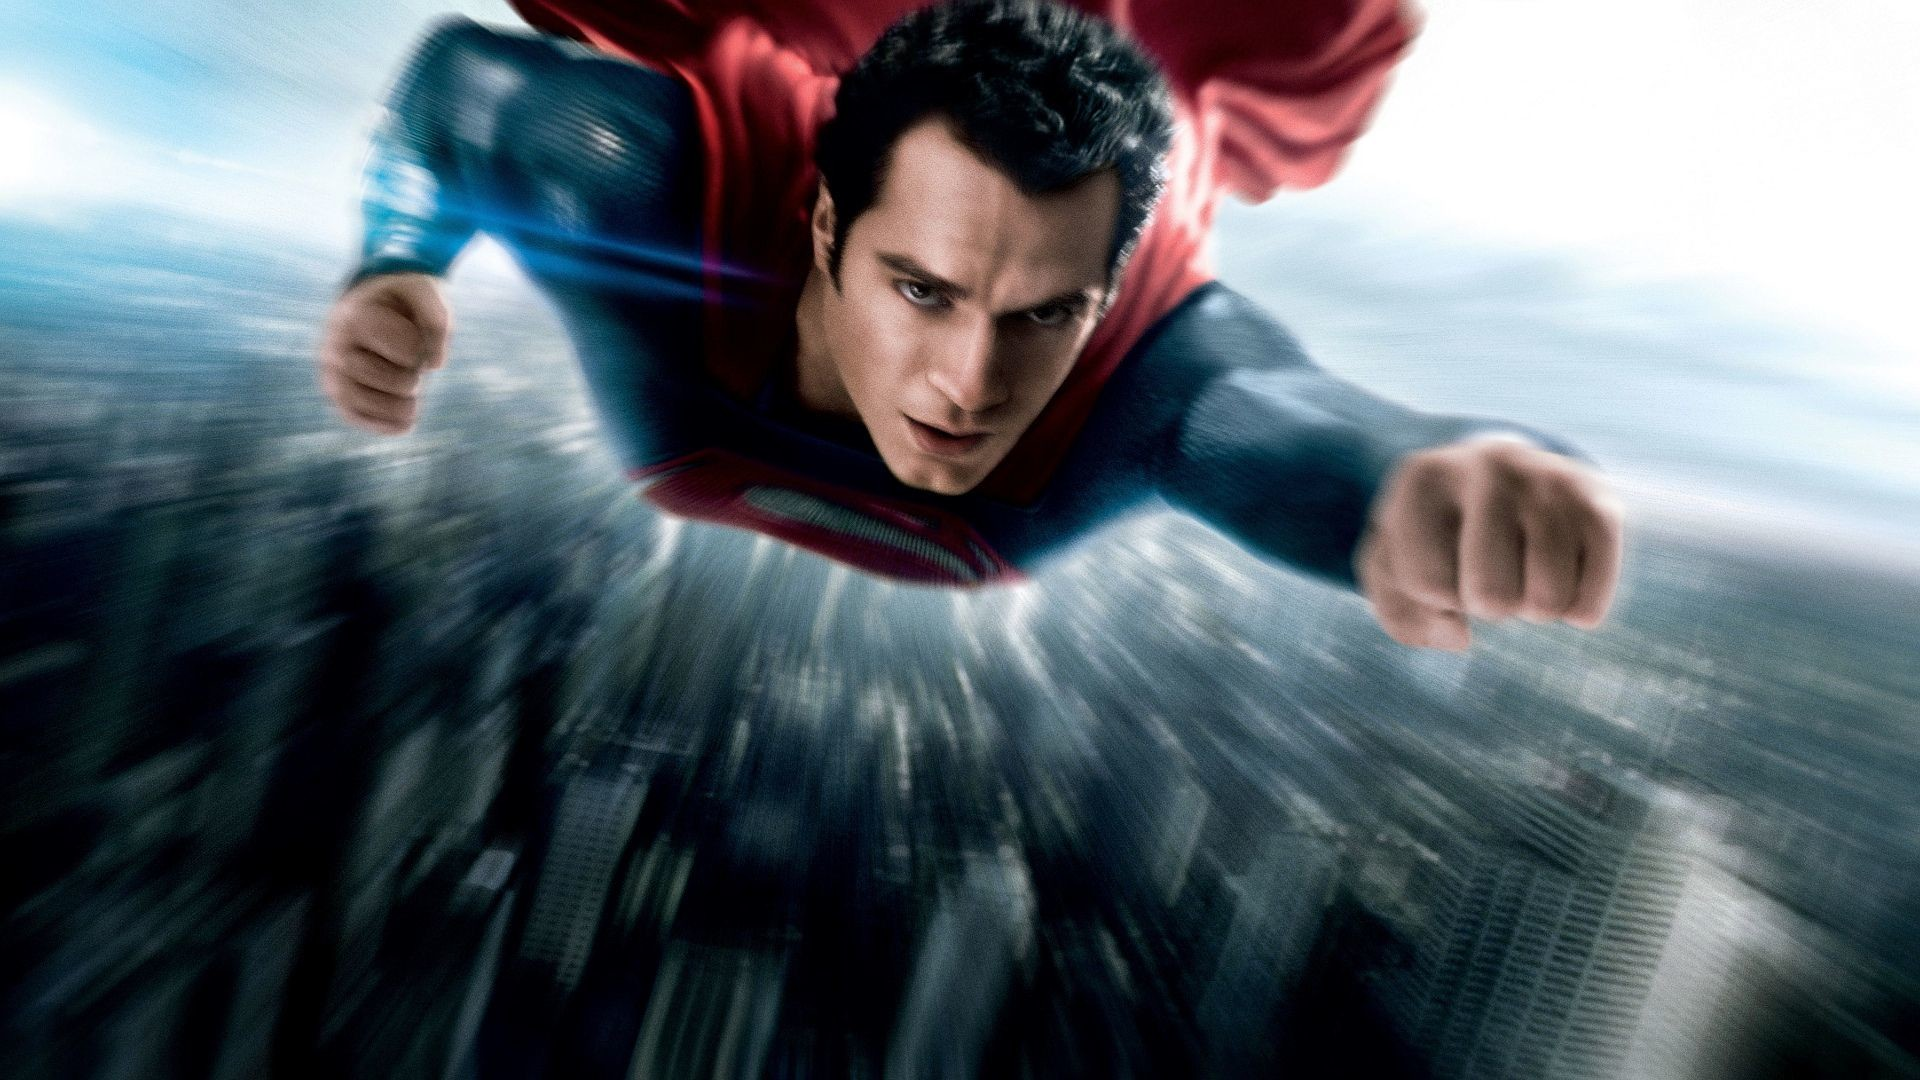 1920x1080 Superman Man Of Steel Movie Wallpapers Wallpaper